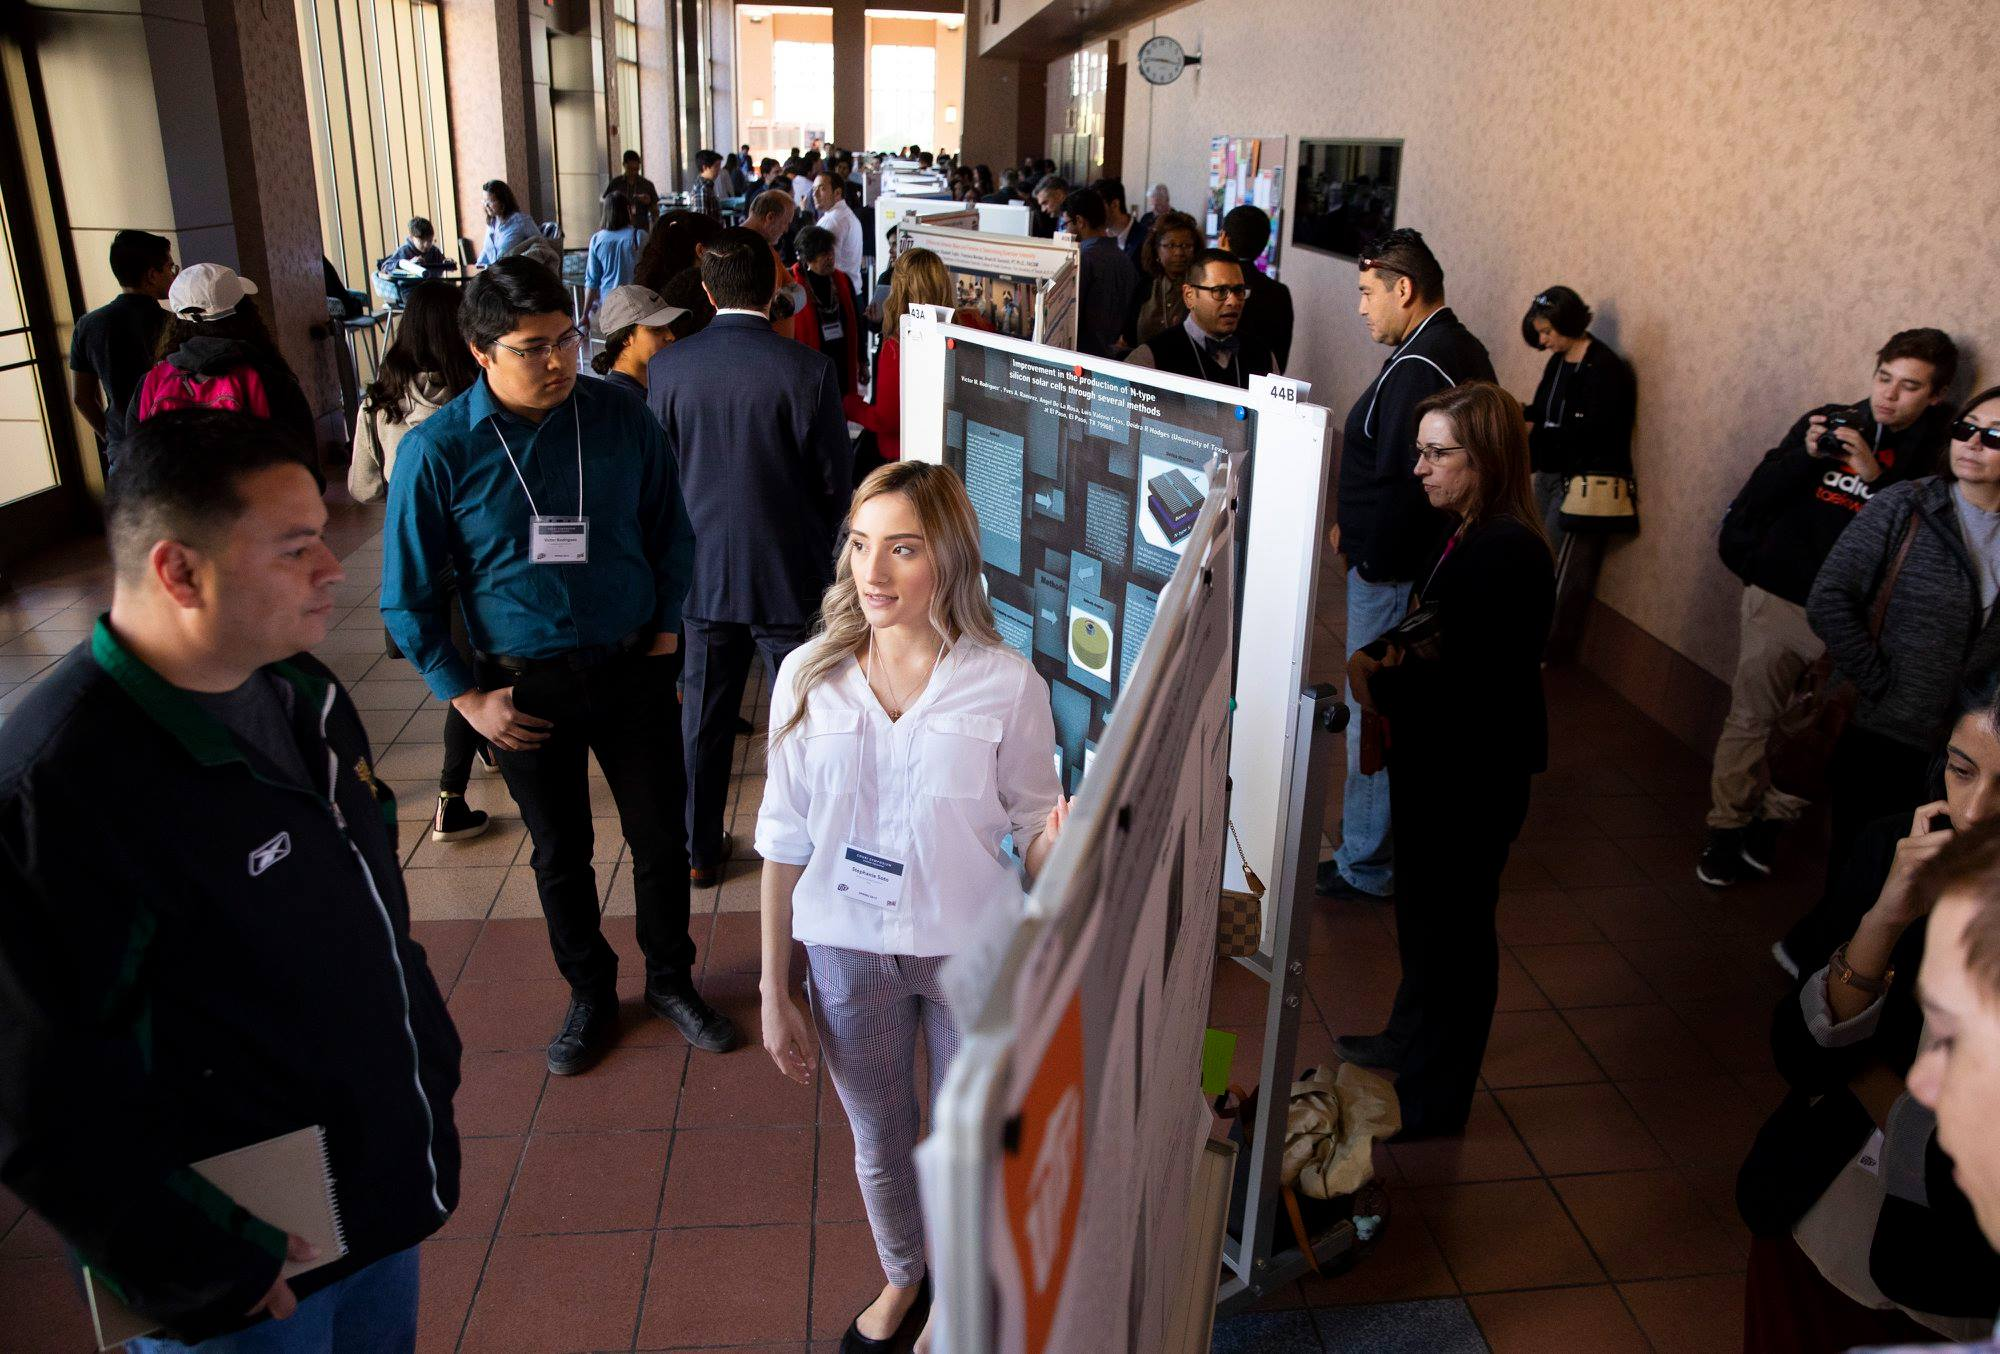 UTEP's Campus Office of Undergraduate Research Initiatives, or COURI, held its Spring Symposium on Saturday, April 13 in the Undergraduate Learning Center. It provided a unique opportunity for undergraduate researchers, scholars and artists to present and discuss their research with faculty, peers and the community.